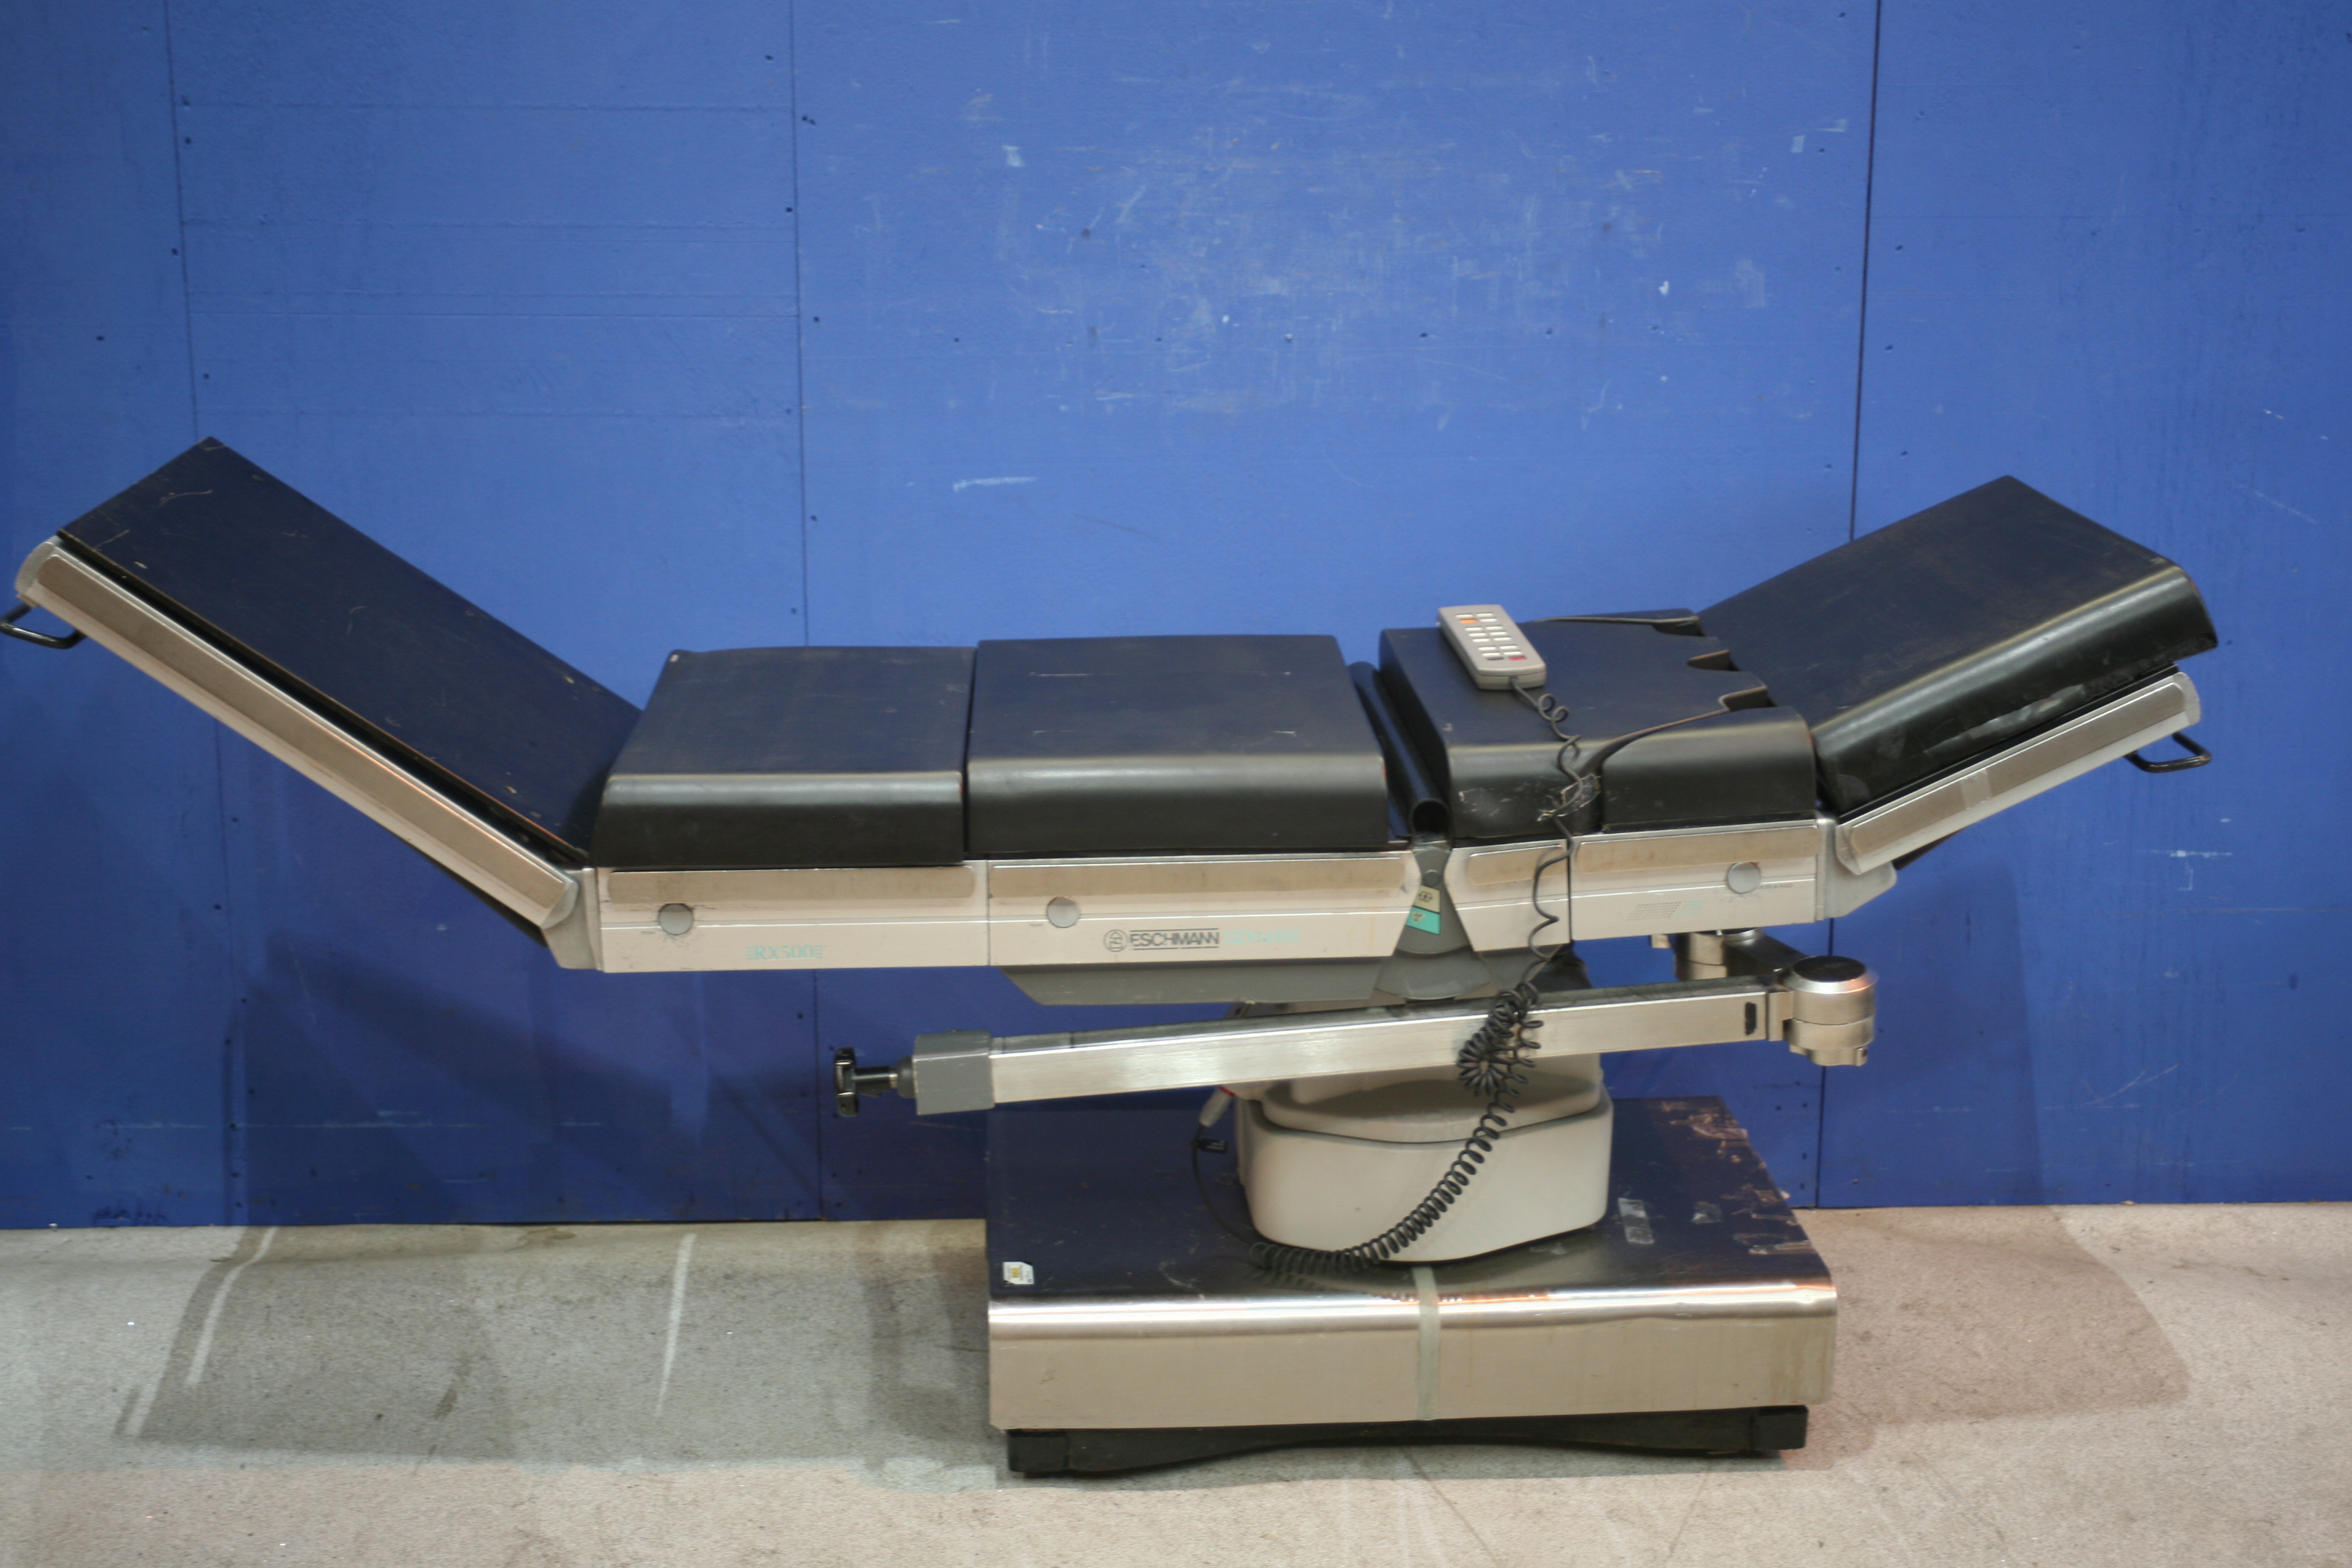 Lot 291 - Eschmann RX 500 Operating Table *With Remote Control And Mattress* (Tested Working)